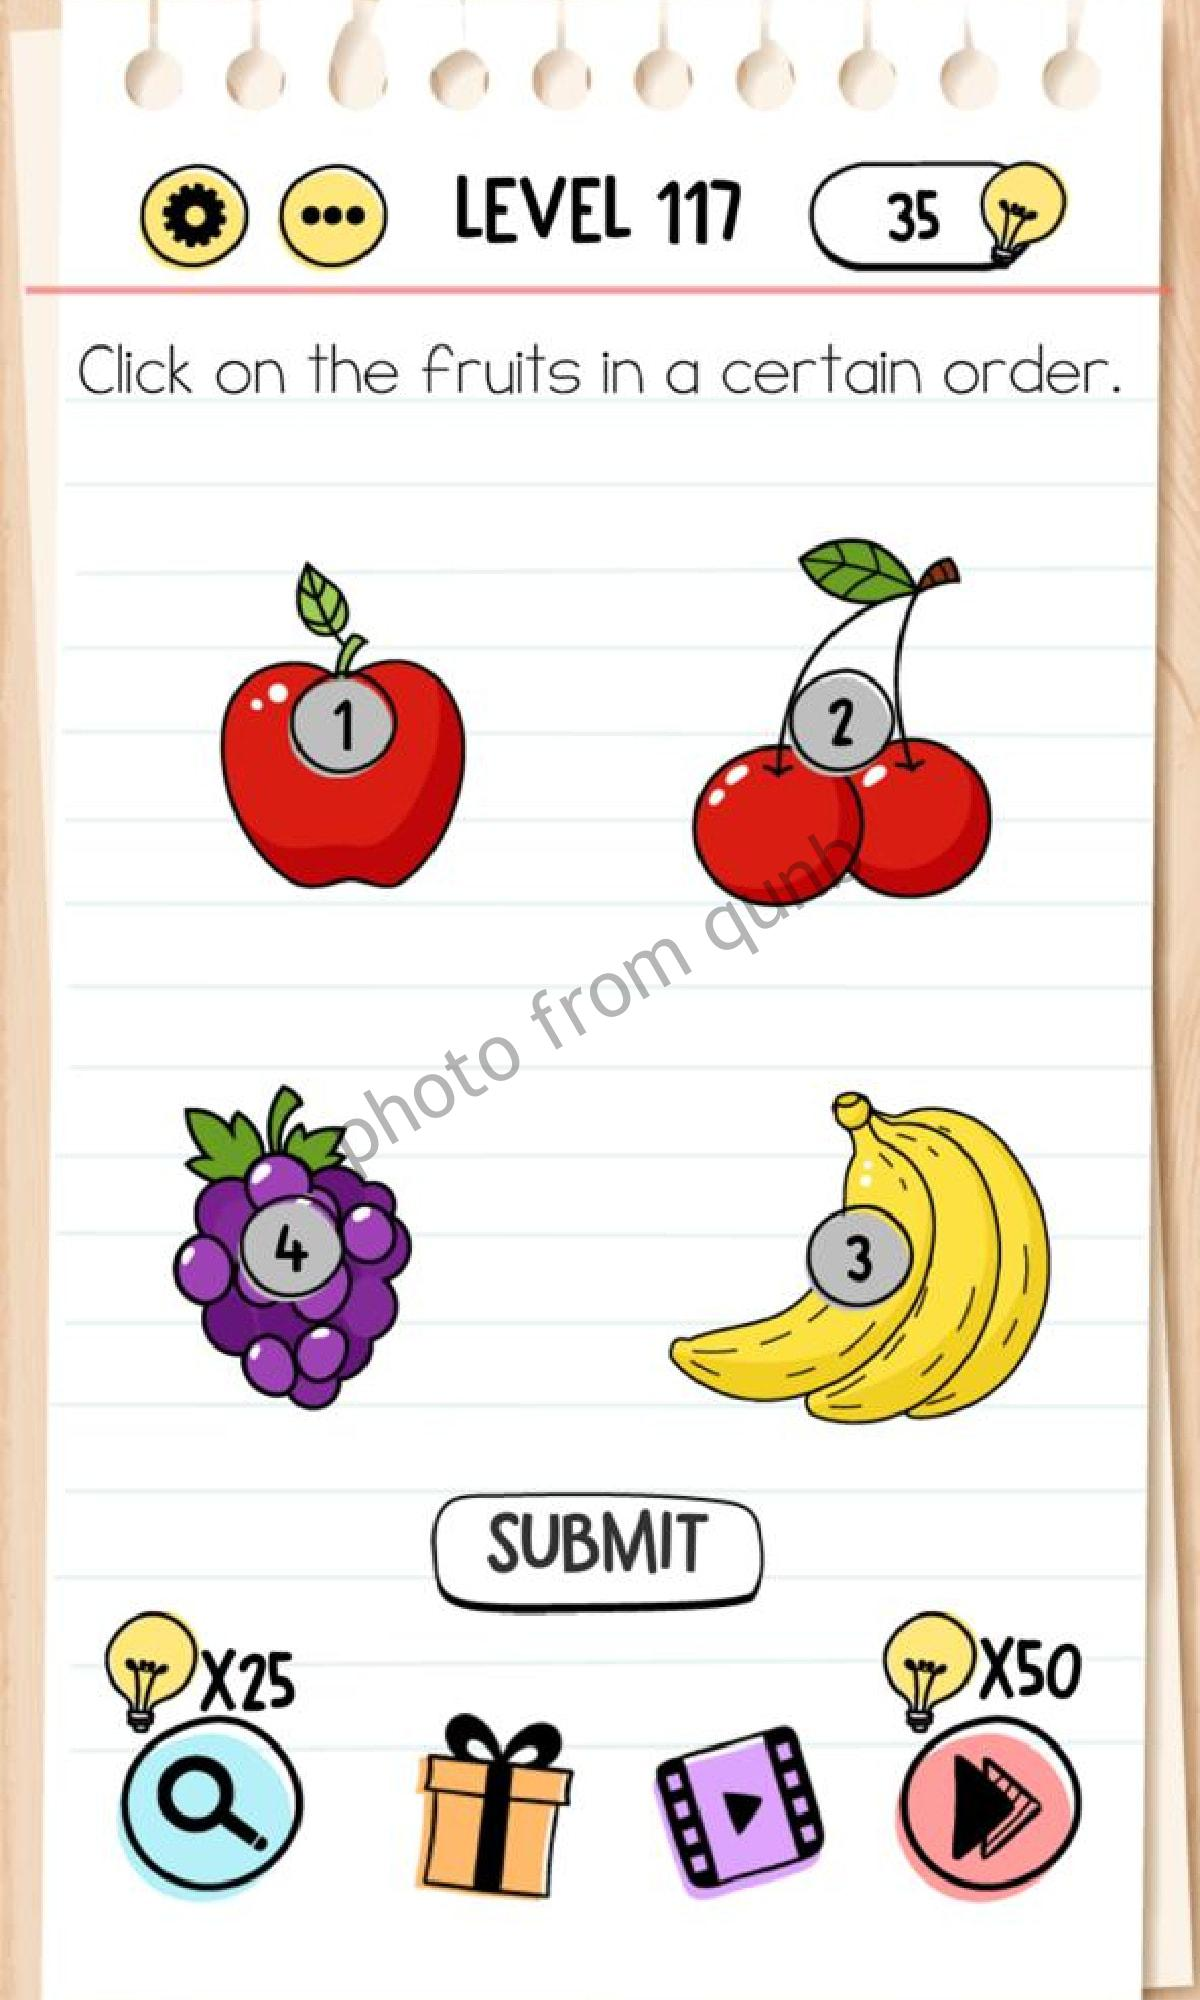 Brain Test Level 116 : brain, level, Brain, Level, Click, Fruits, Certain, Order, Answers, Solutions